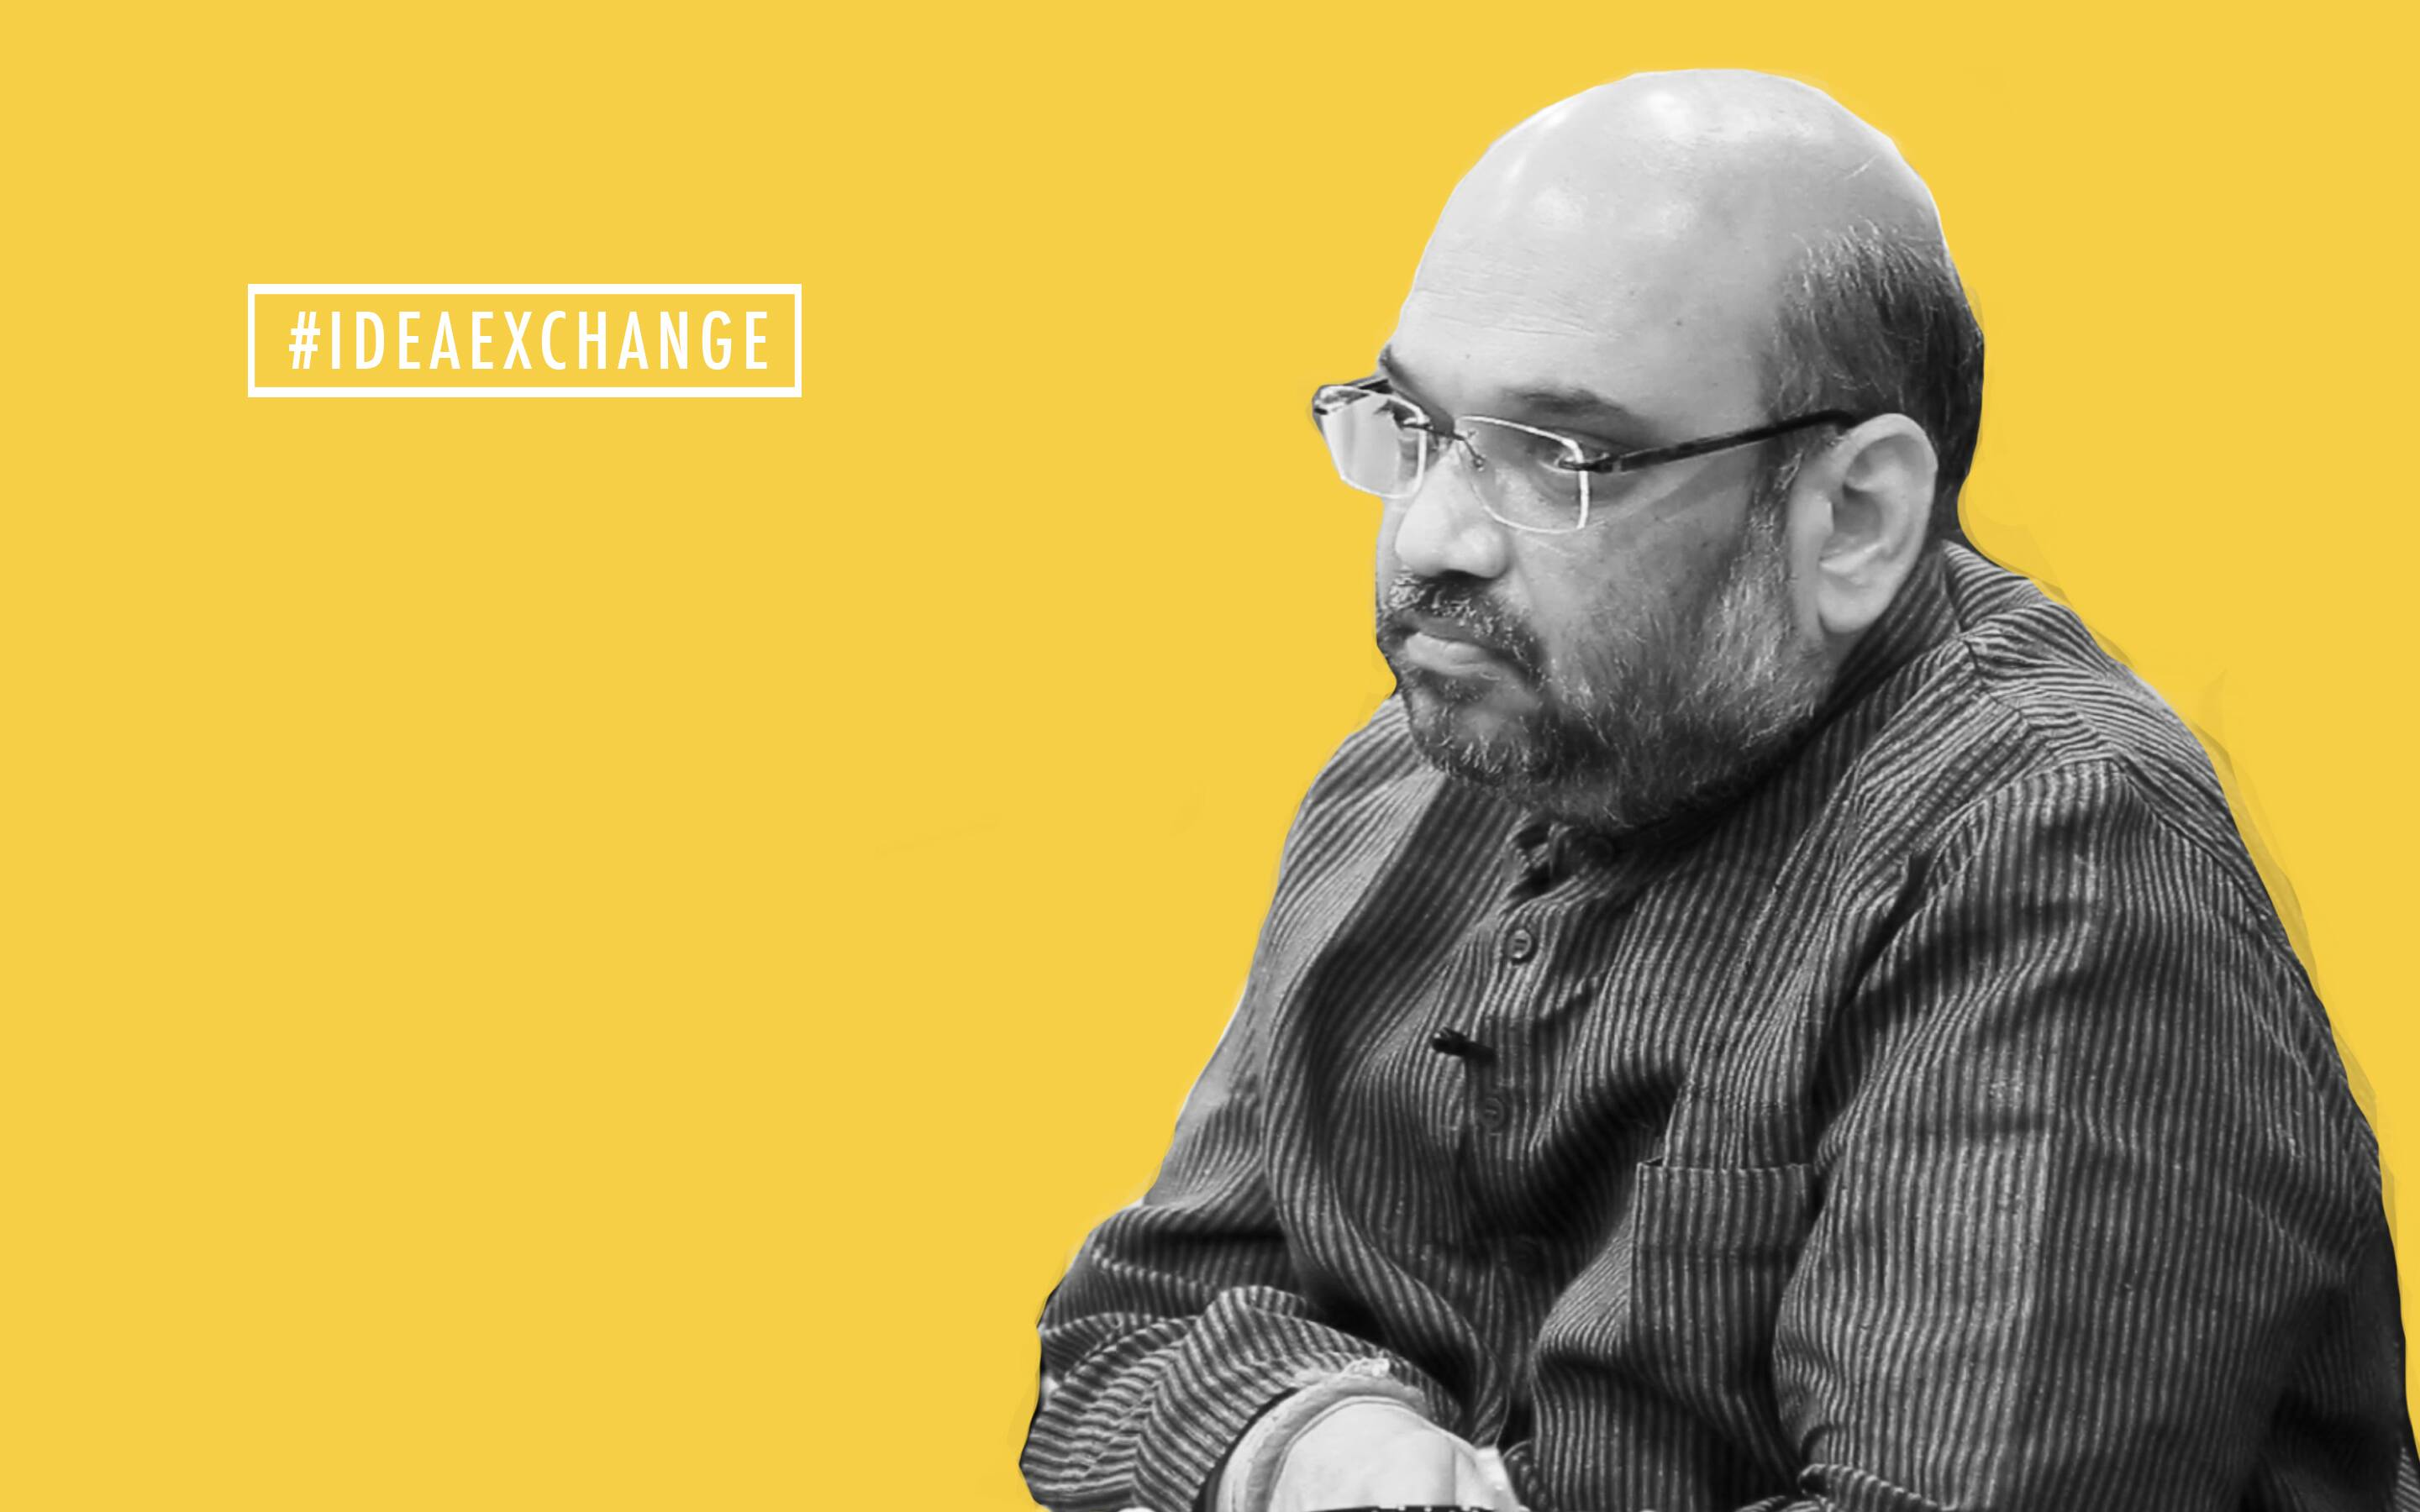 Zero tolerance against anti-nationals and terrorism: Amit Shah at Idea Exchange